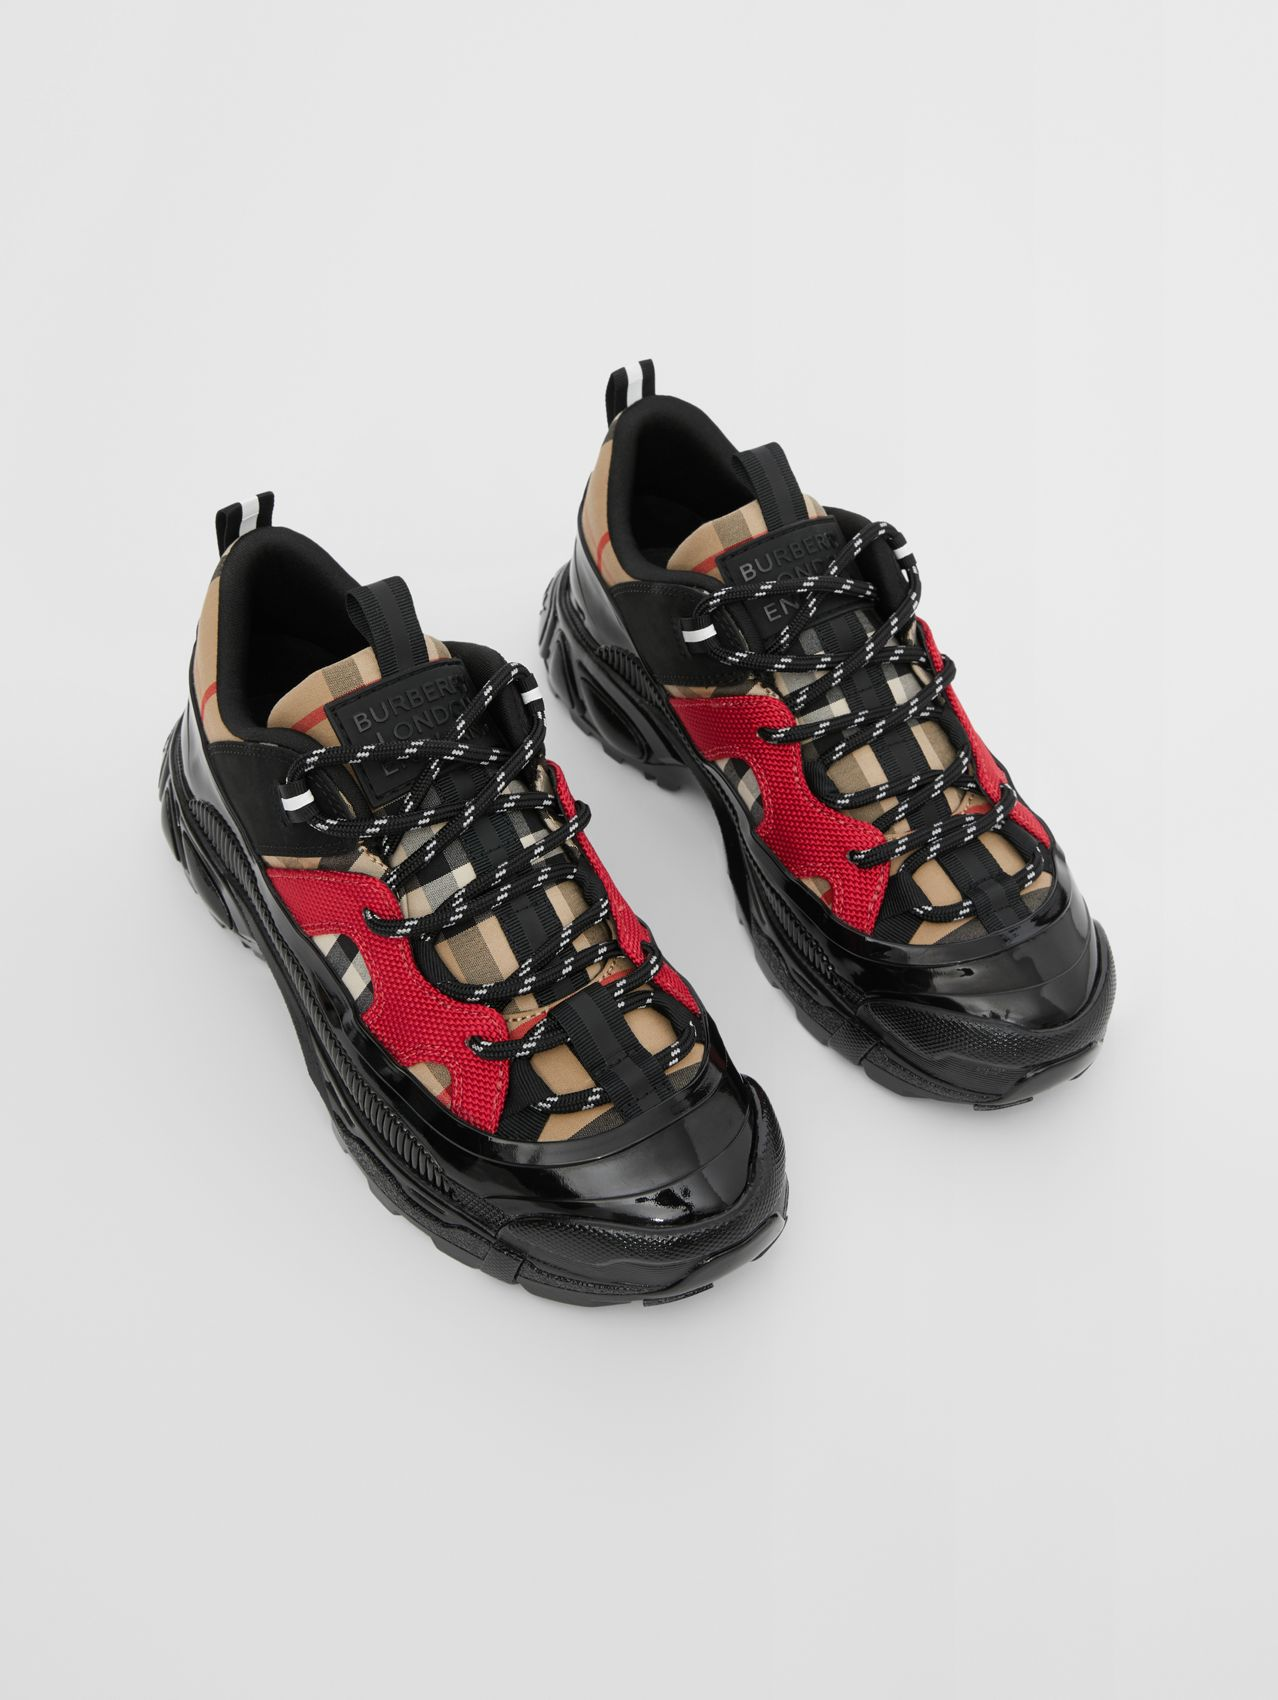 Vintage Check Cotton and Nubuck Sneakers (Black/bright Red)